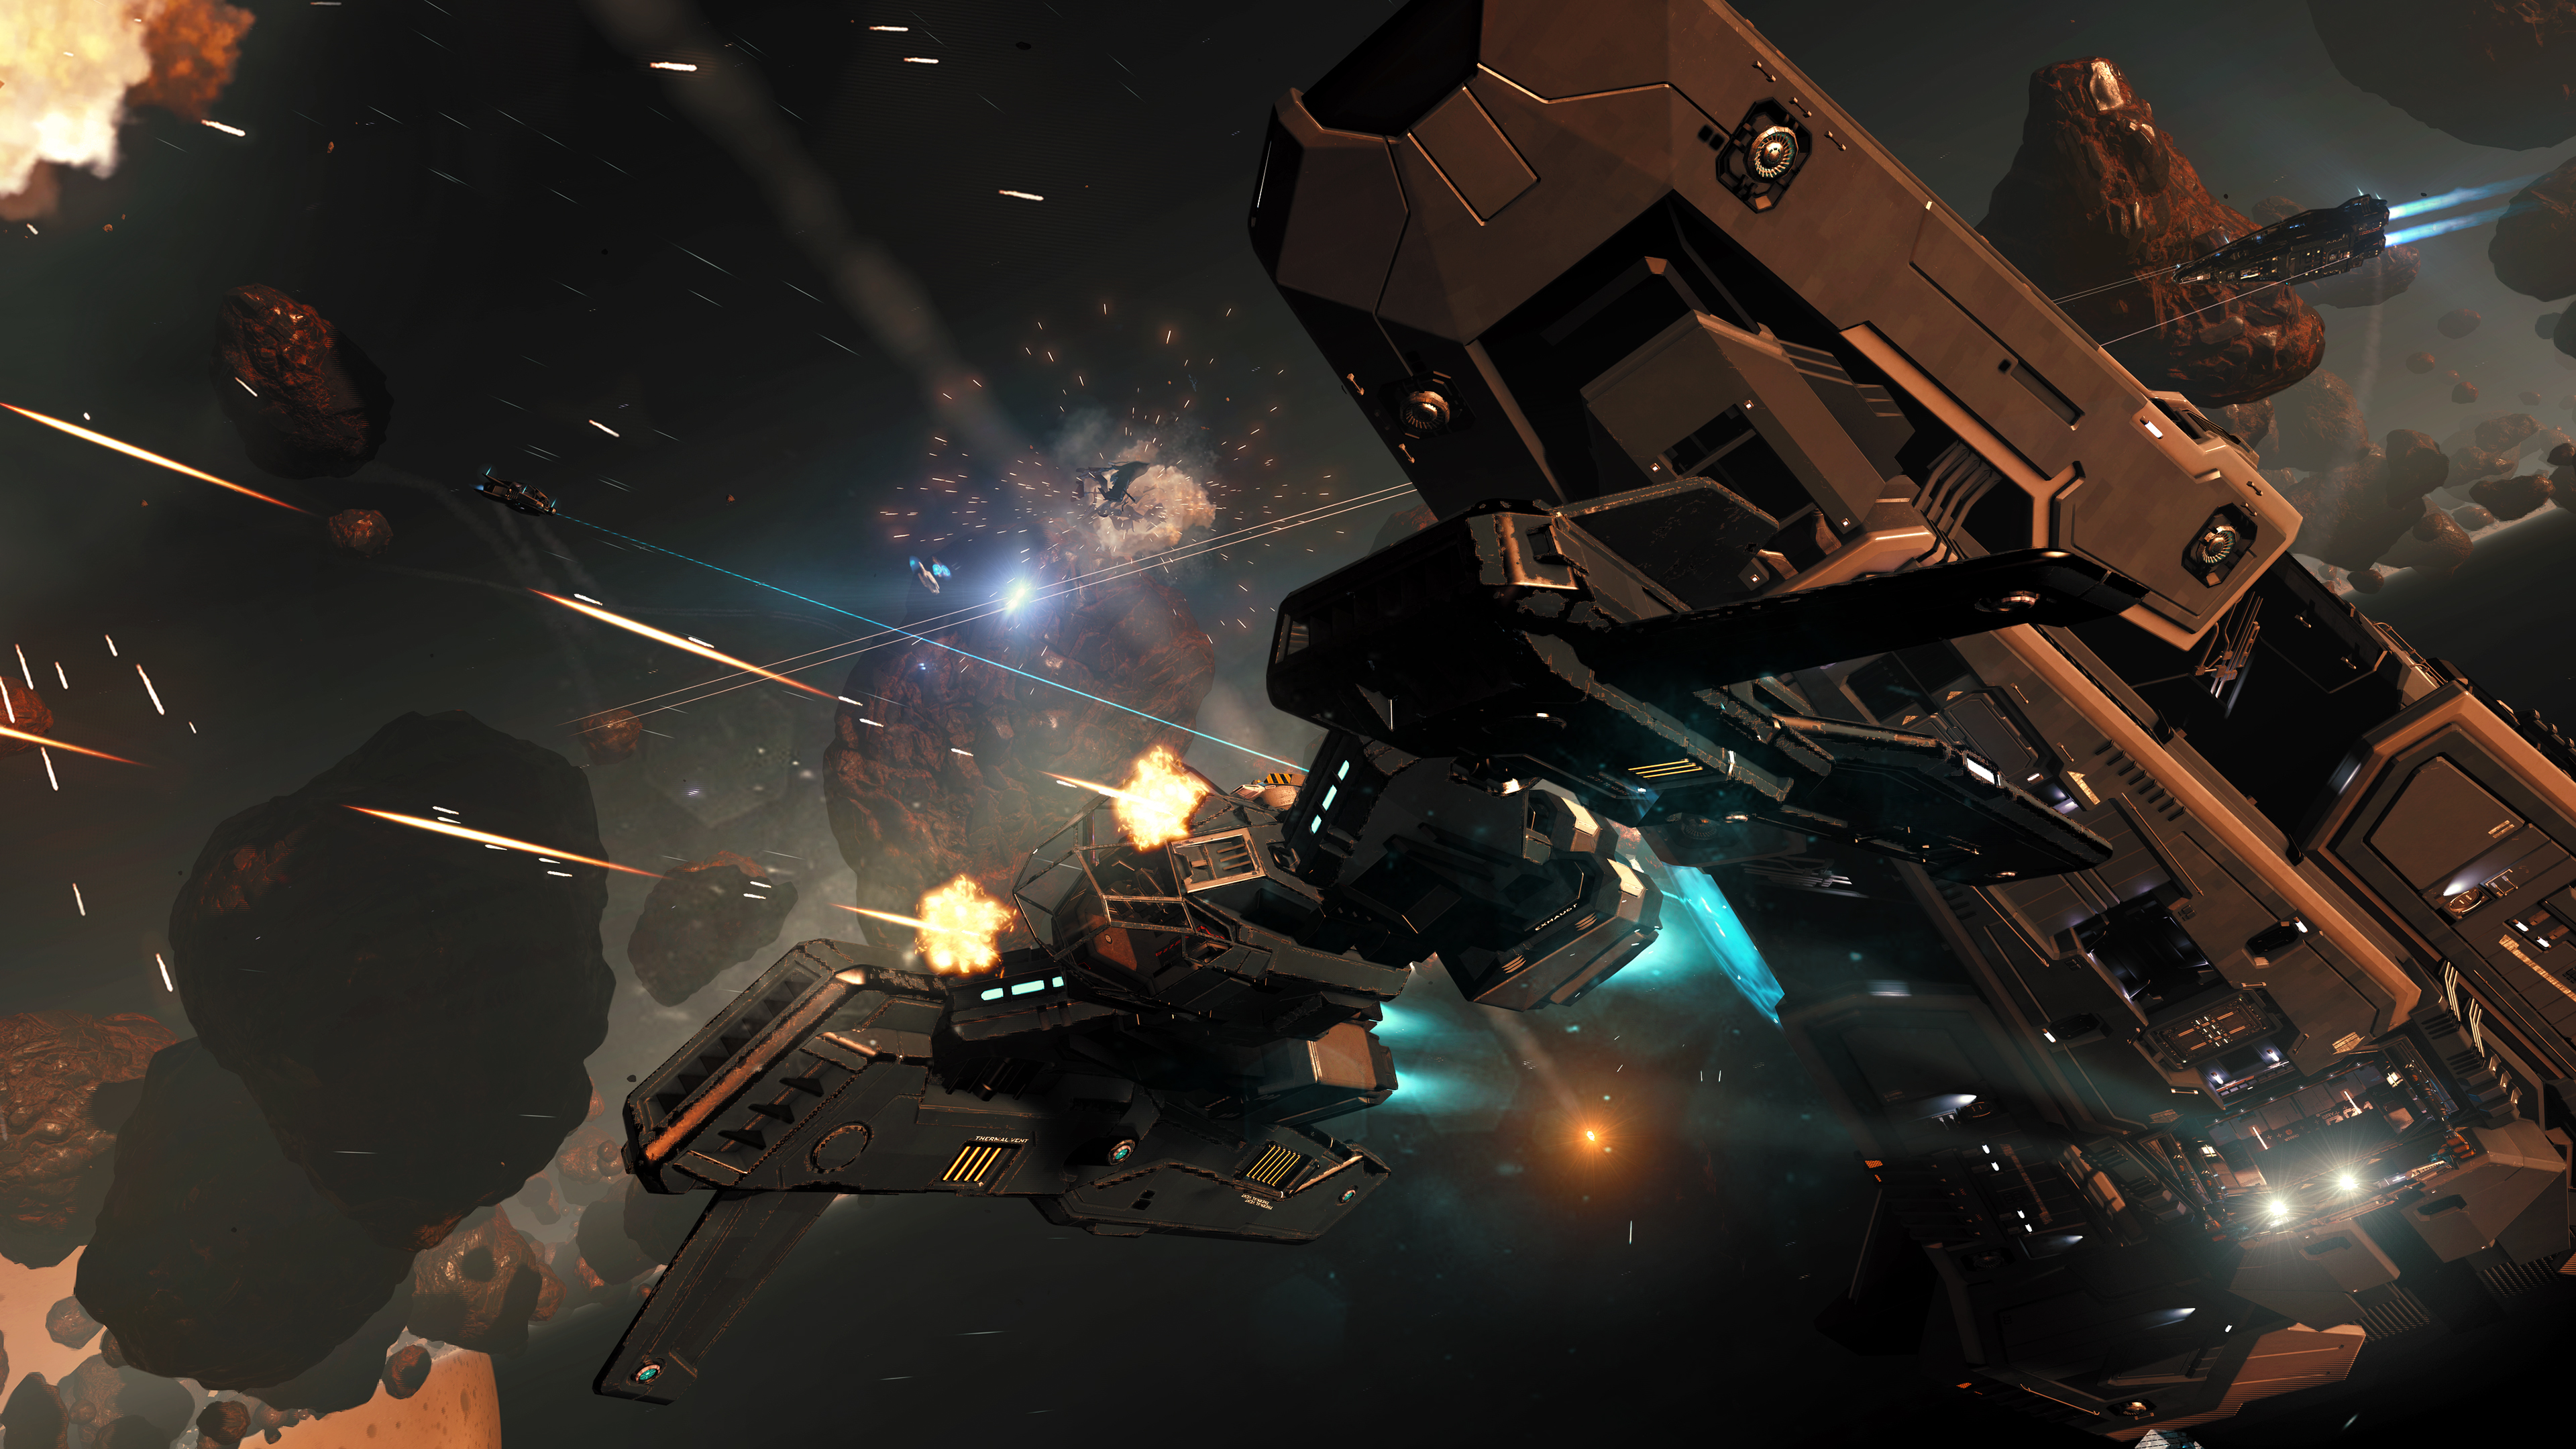 Hyperspace 3d Wallpaper Elite Dangerous Guardians 2 2 Everything You Need To